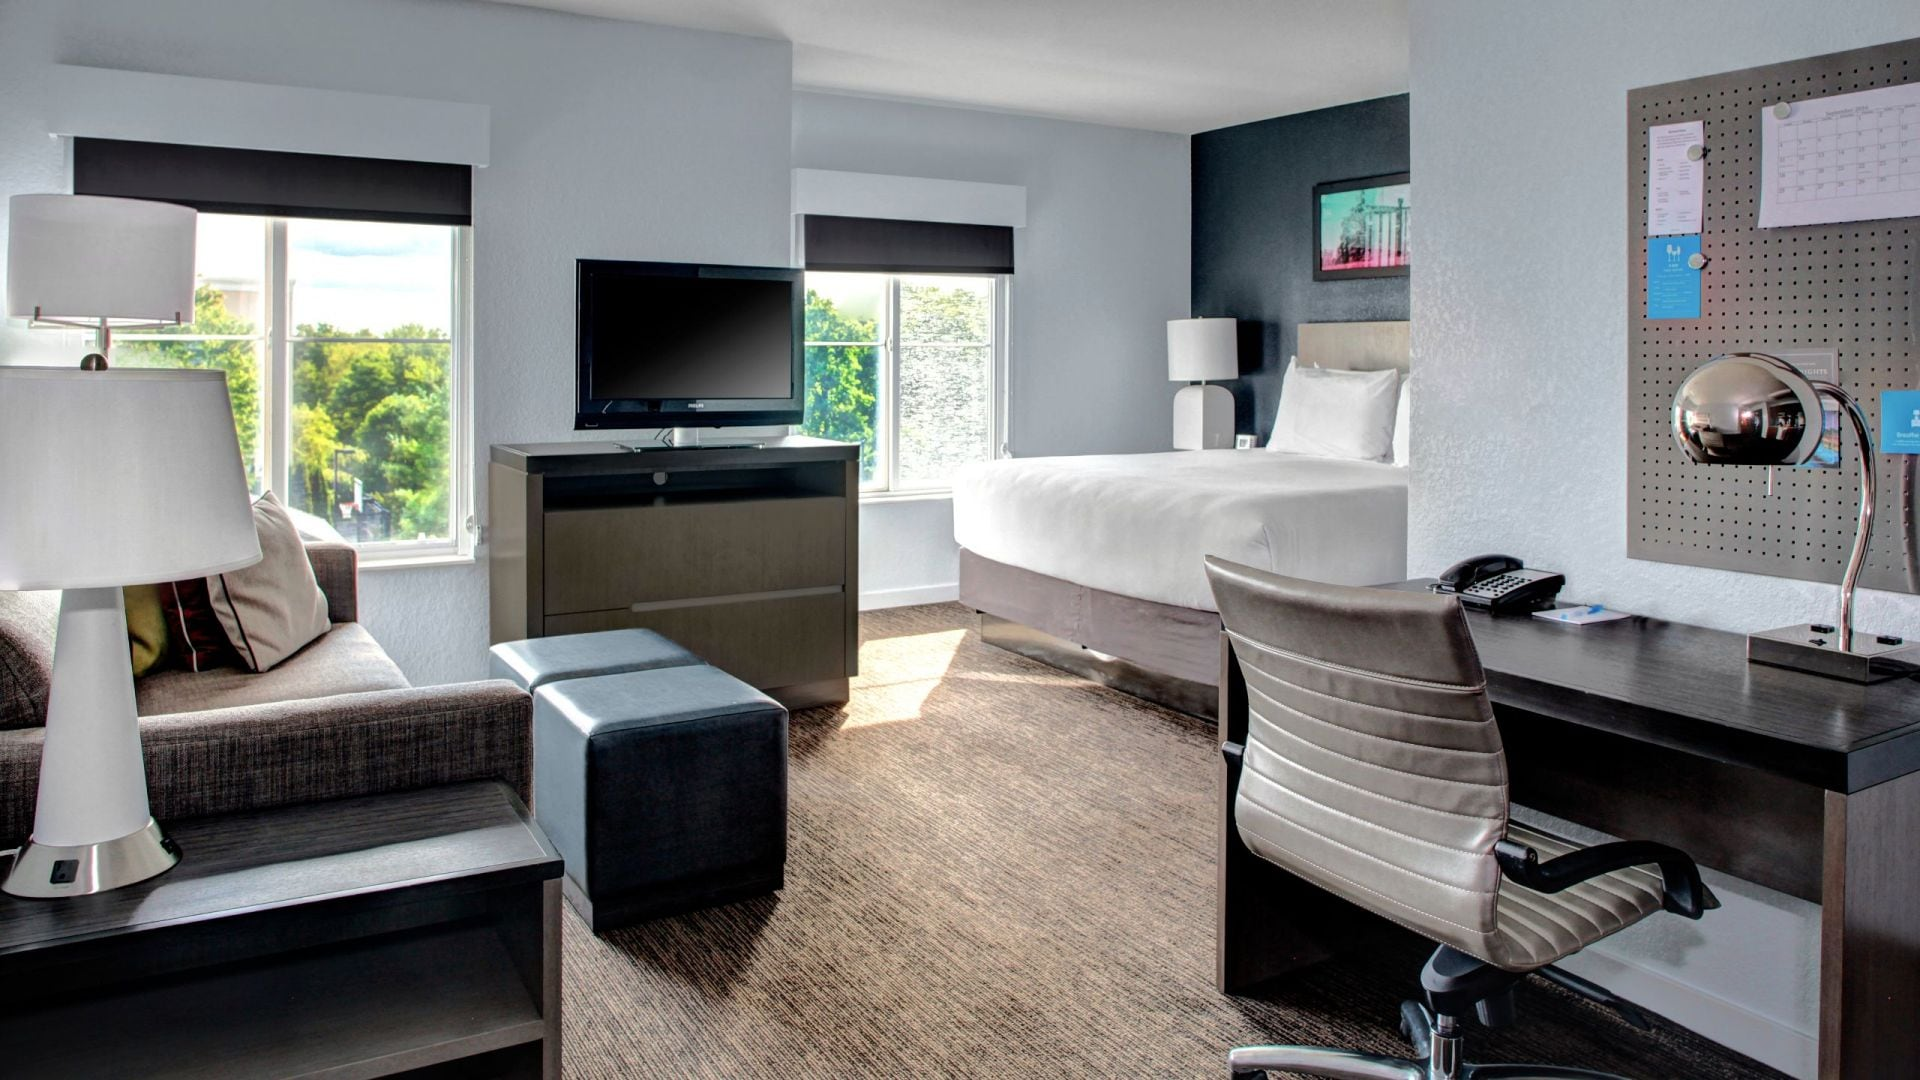 Hyatt House Raleigh Durham Suite